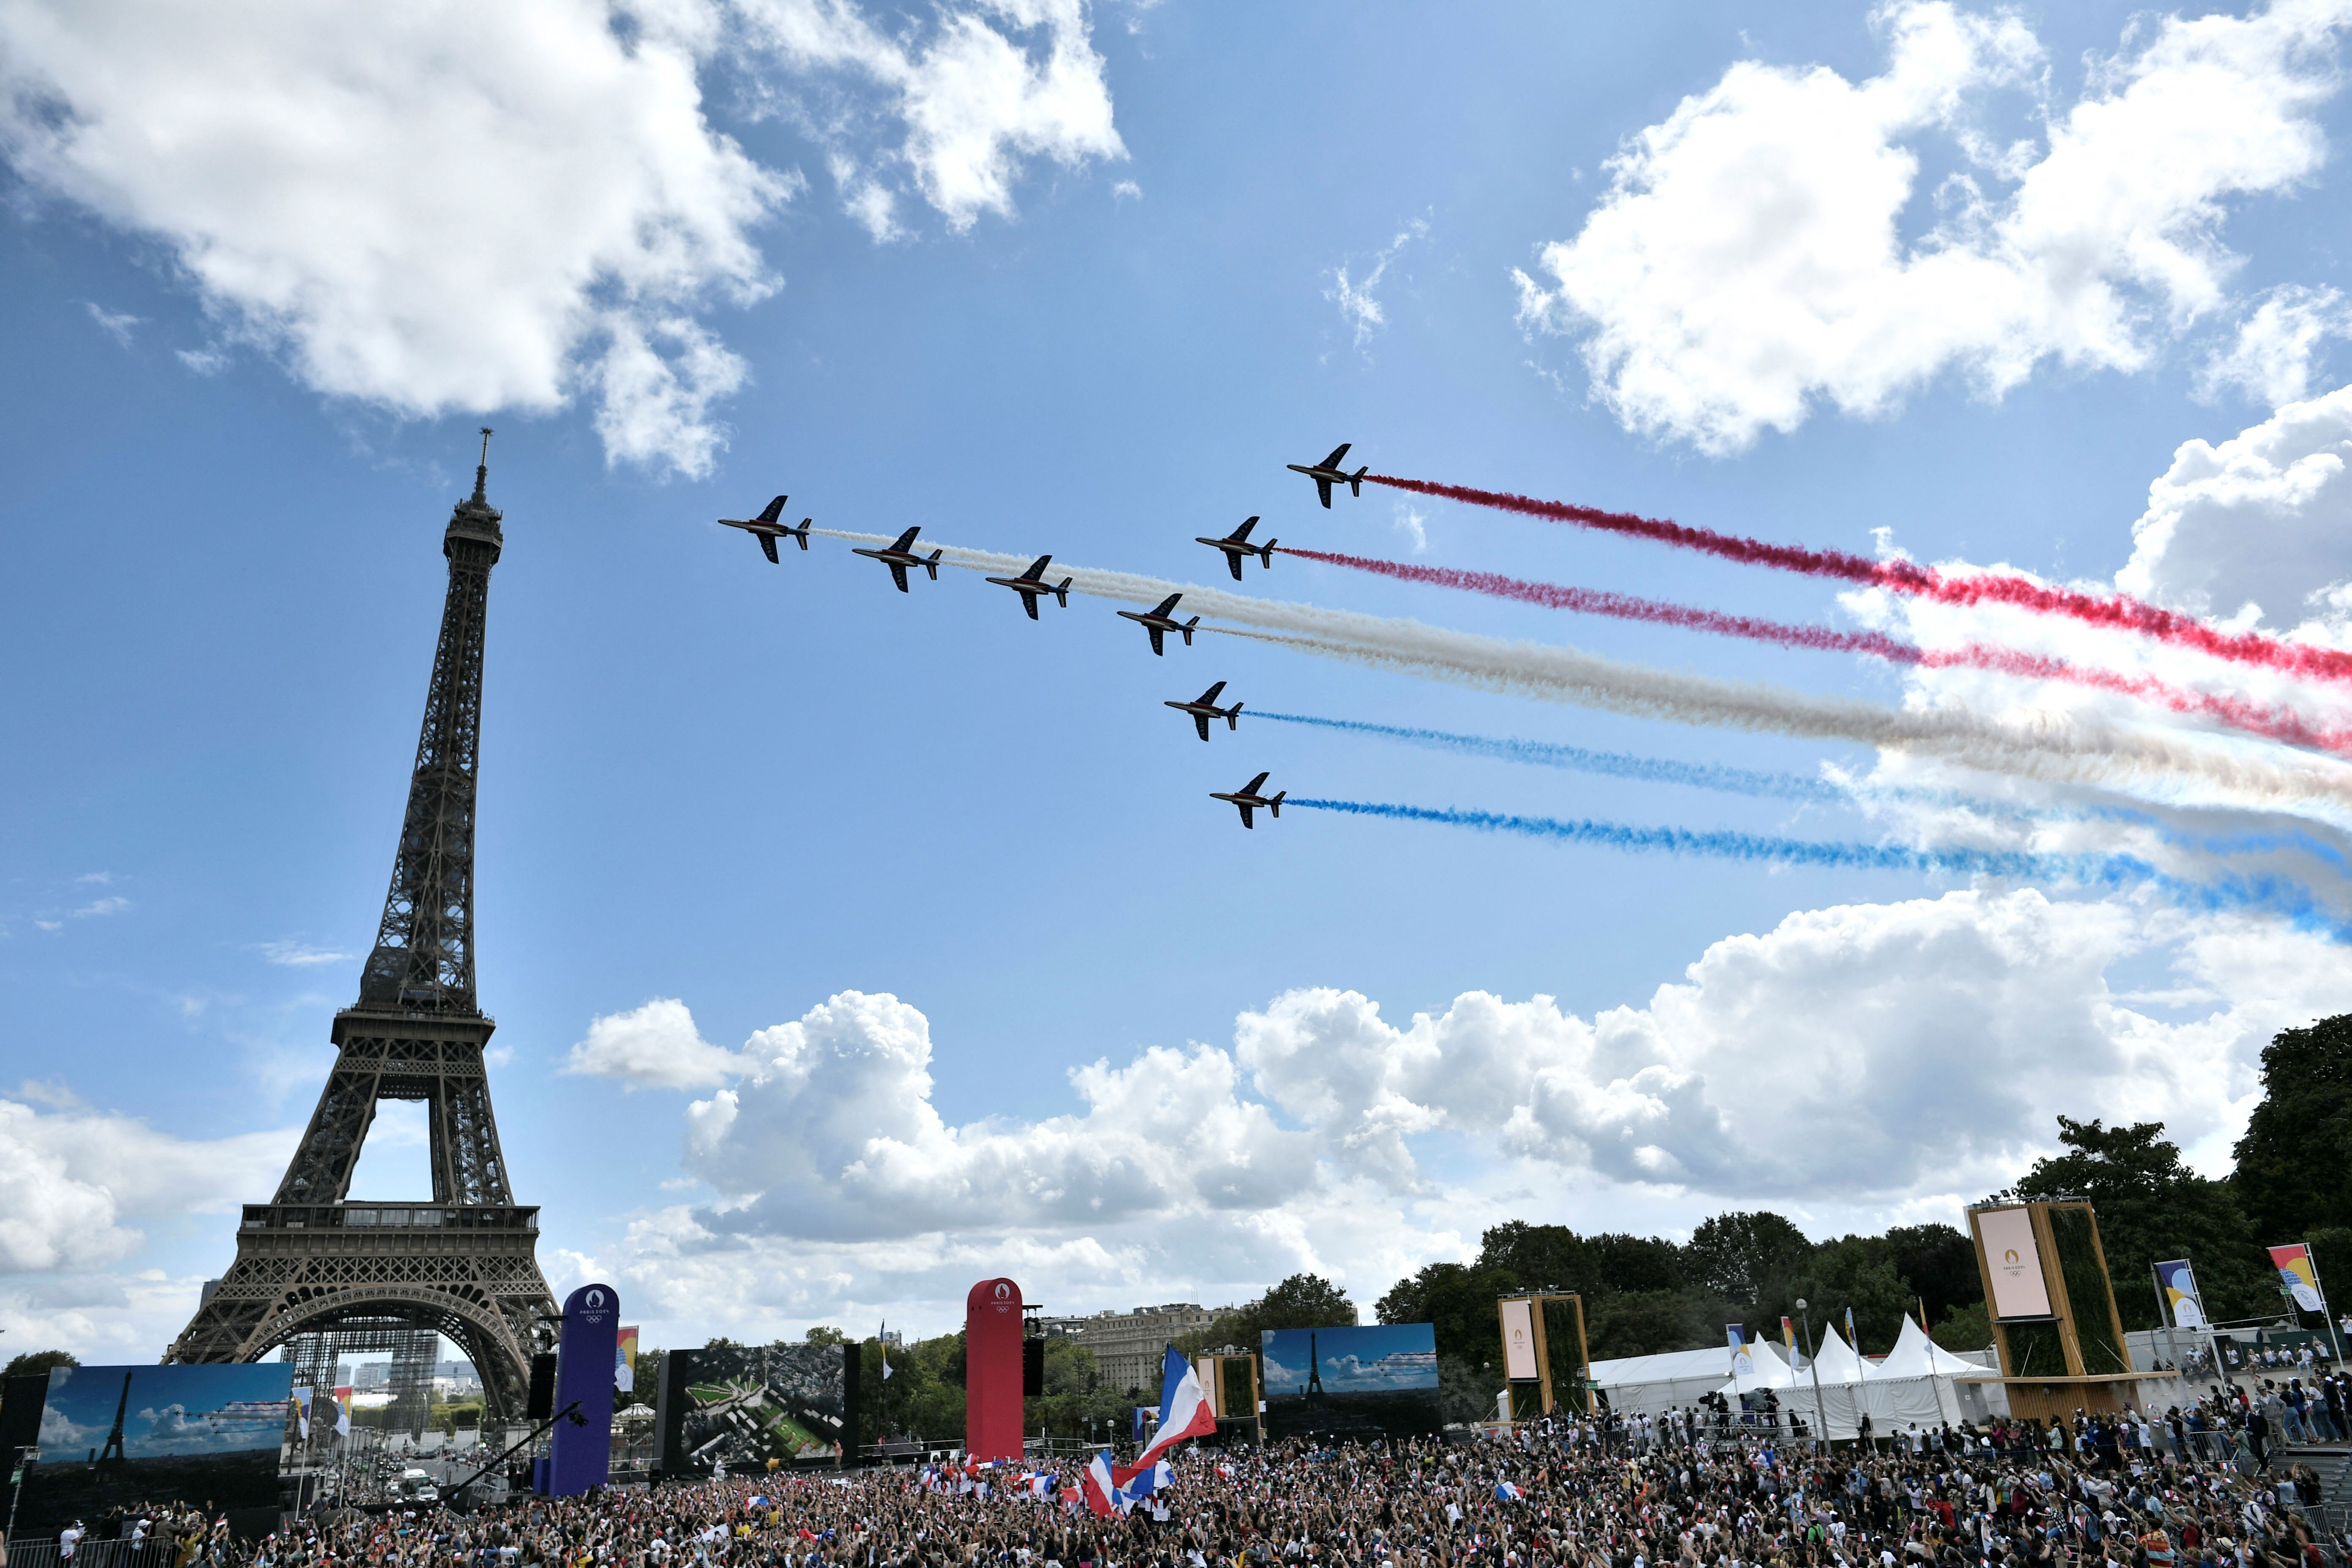 The Patrouille de France fly over celebrations at the Trocadéro in Paris.